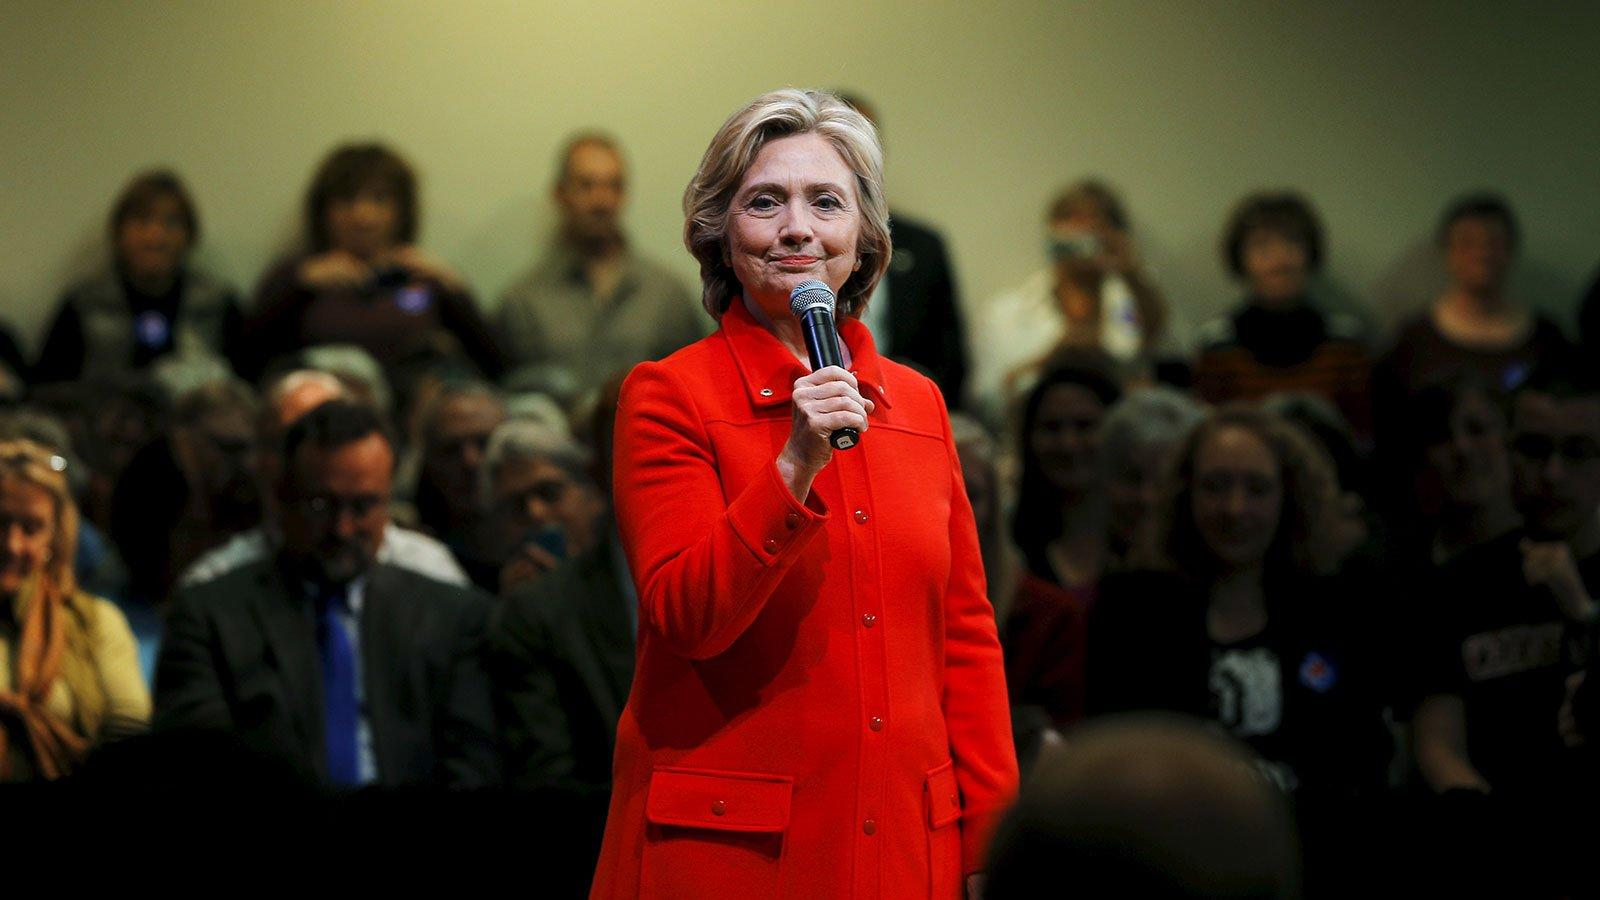 Clinton Wants $275 Billion for Infrastructure, but How Will She Pay for It?